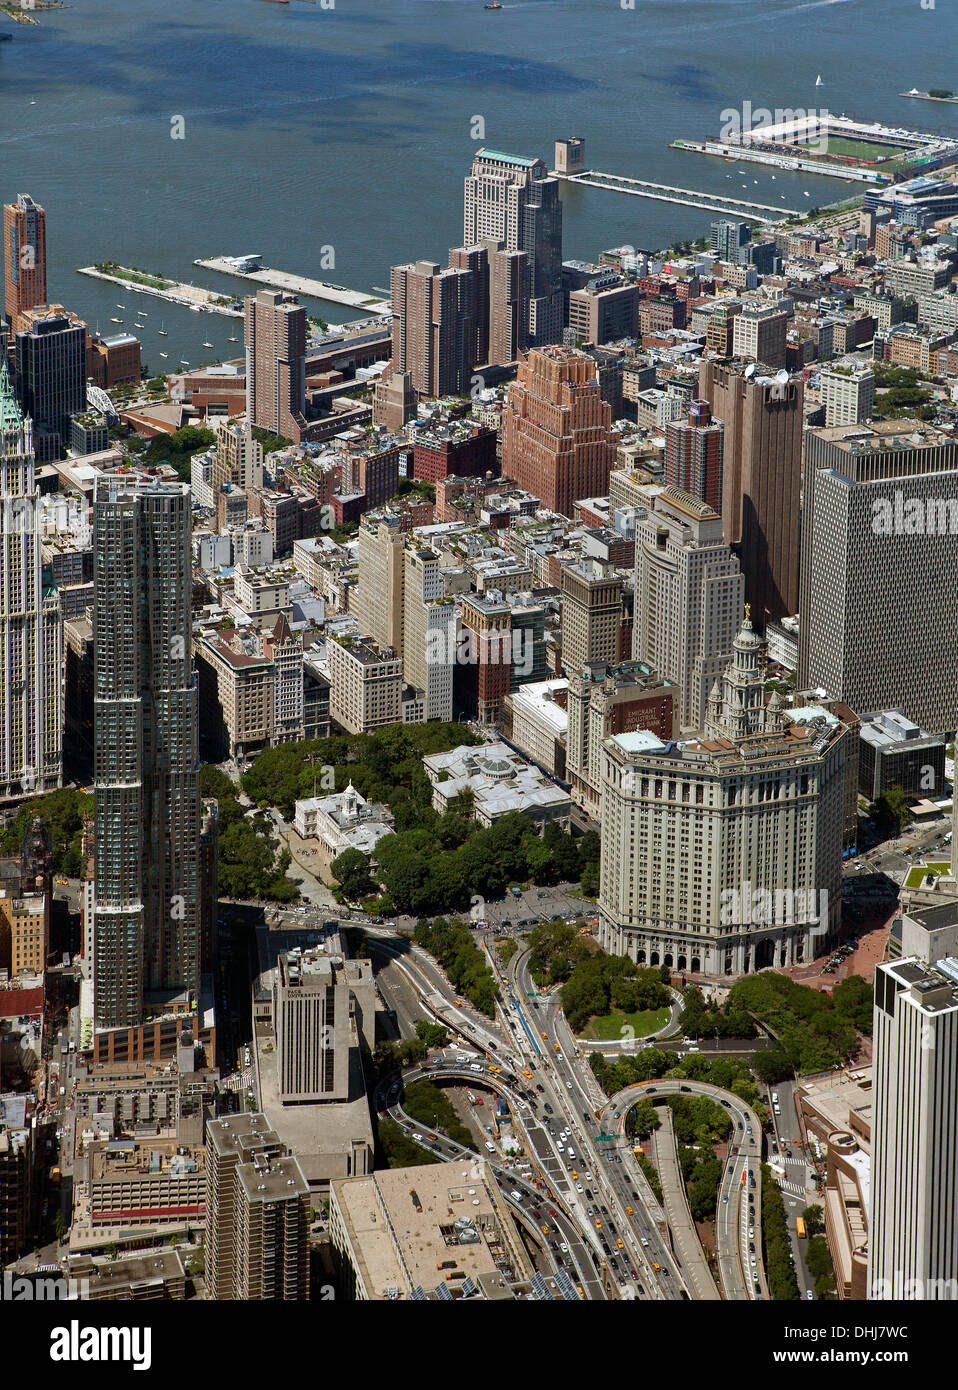 aerial photograph Civic Center, Municipal Building, City Hall, Manhattan, New York City - Stock Image